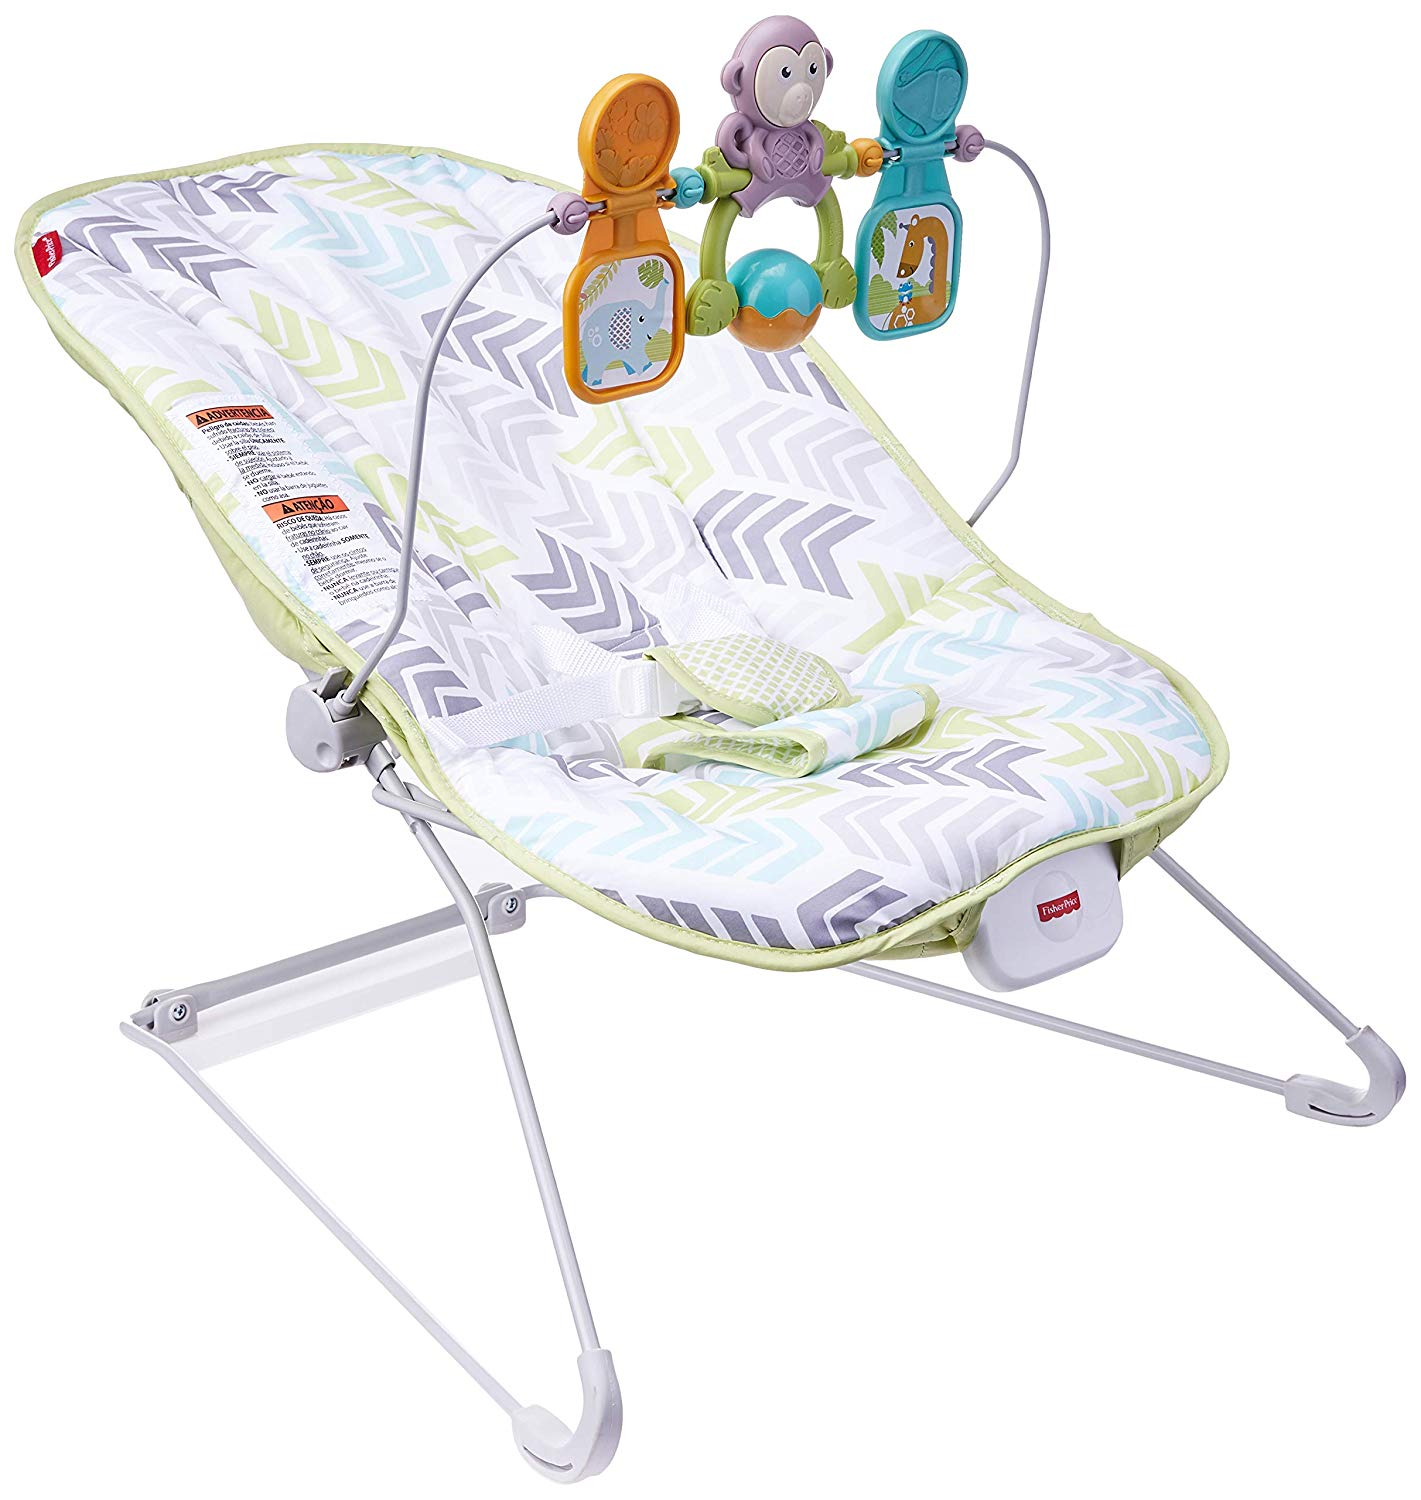 Deluxe Bouncer: Green Blue Grey Fisher Price by Fisher-Price